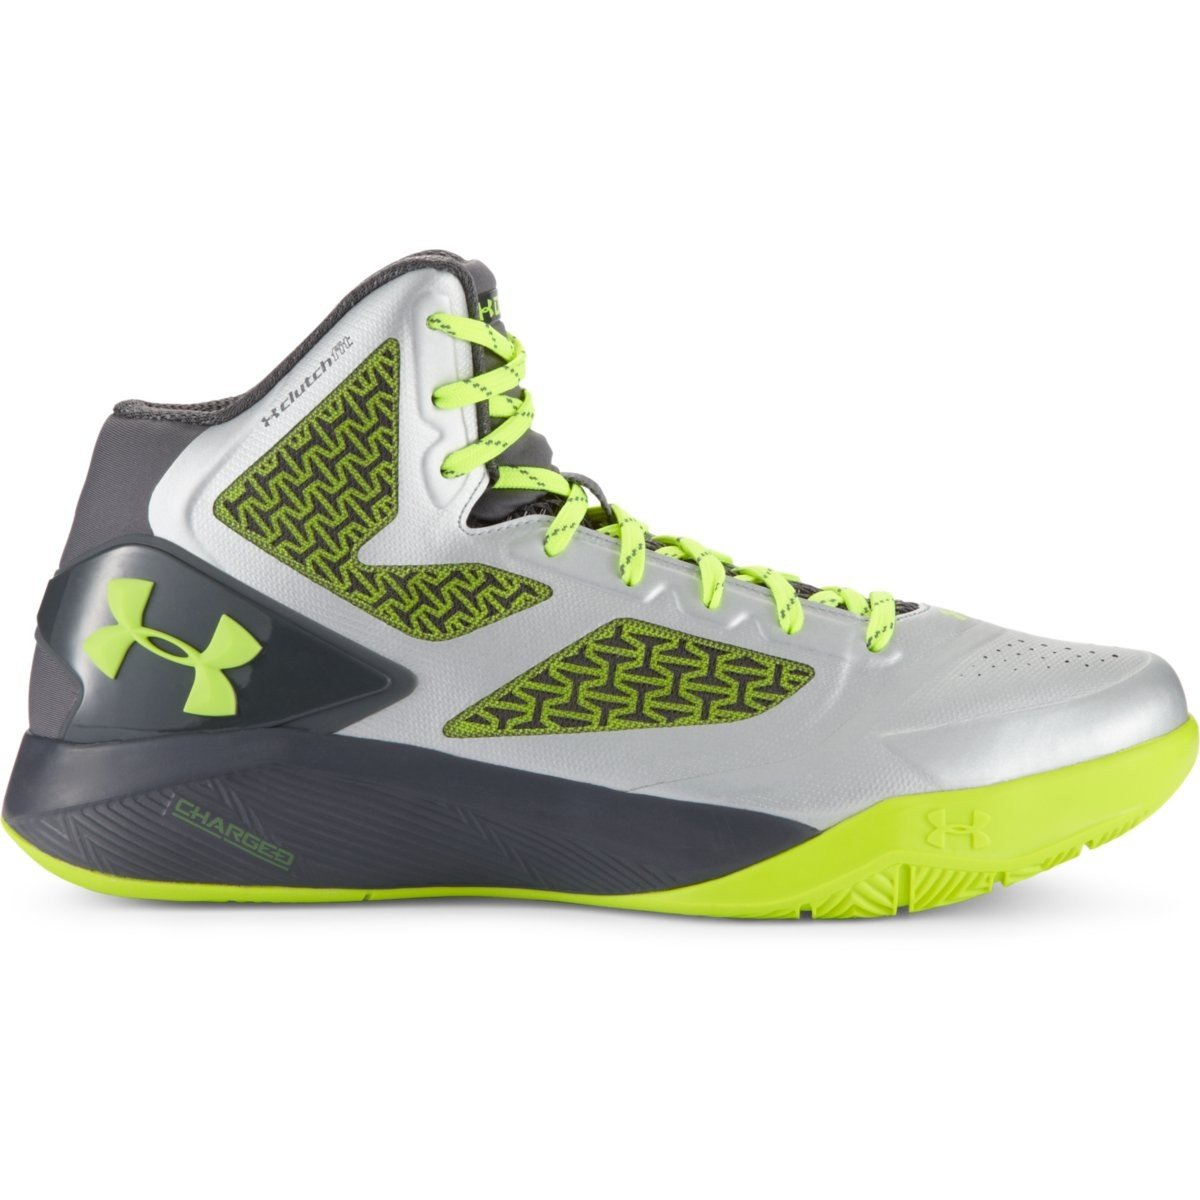 [アンダーアーマー] UNDER ARMOUR UAクラッチフィット ドライブ2 B00SLOW316 12.5 D(M) US Metallic Silver/Graphite/High-vis Yellow